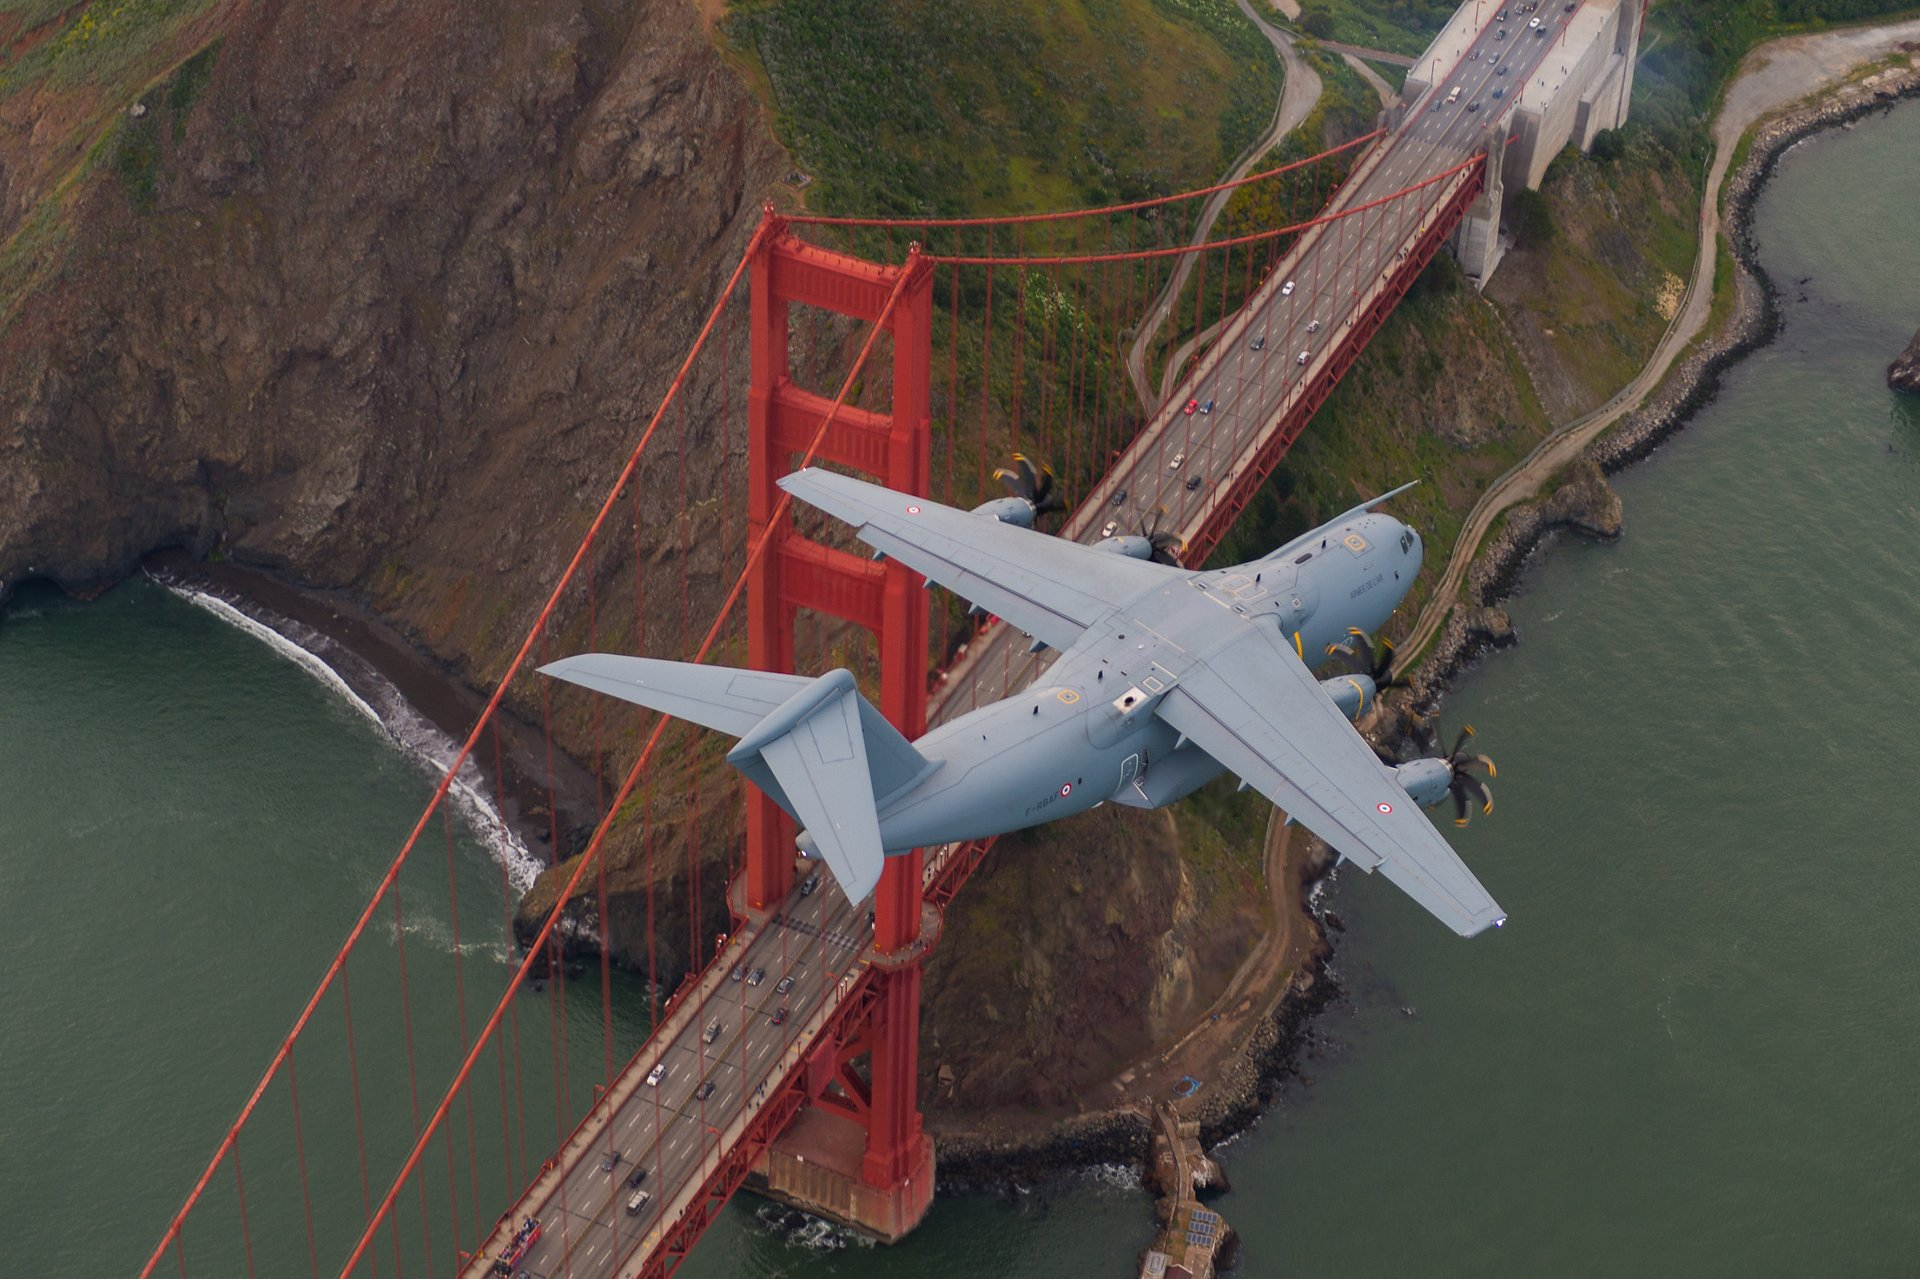 A400M Flying over Golden Gate bridge - San Francisco